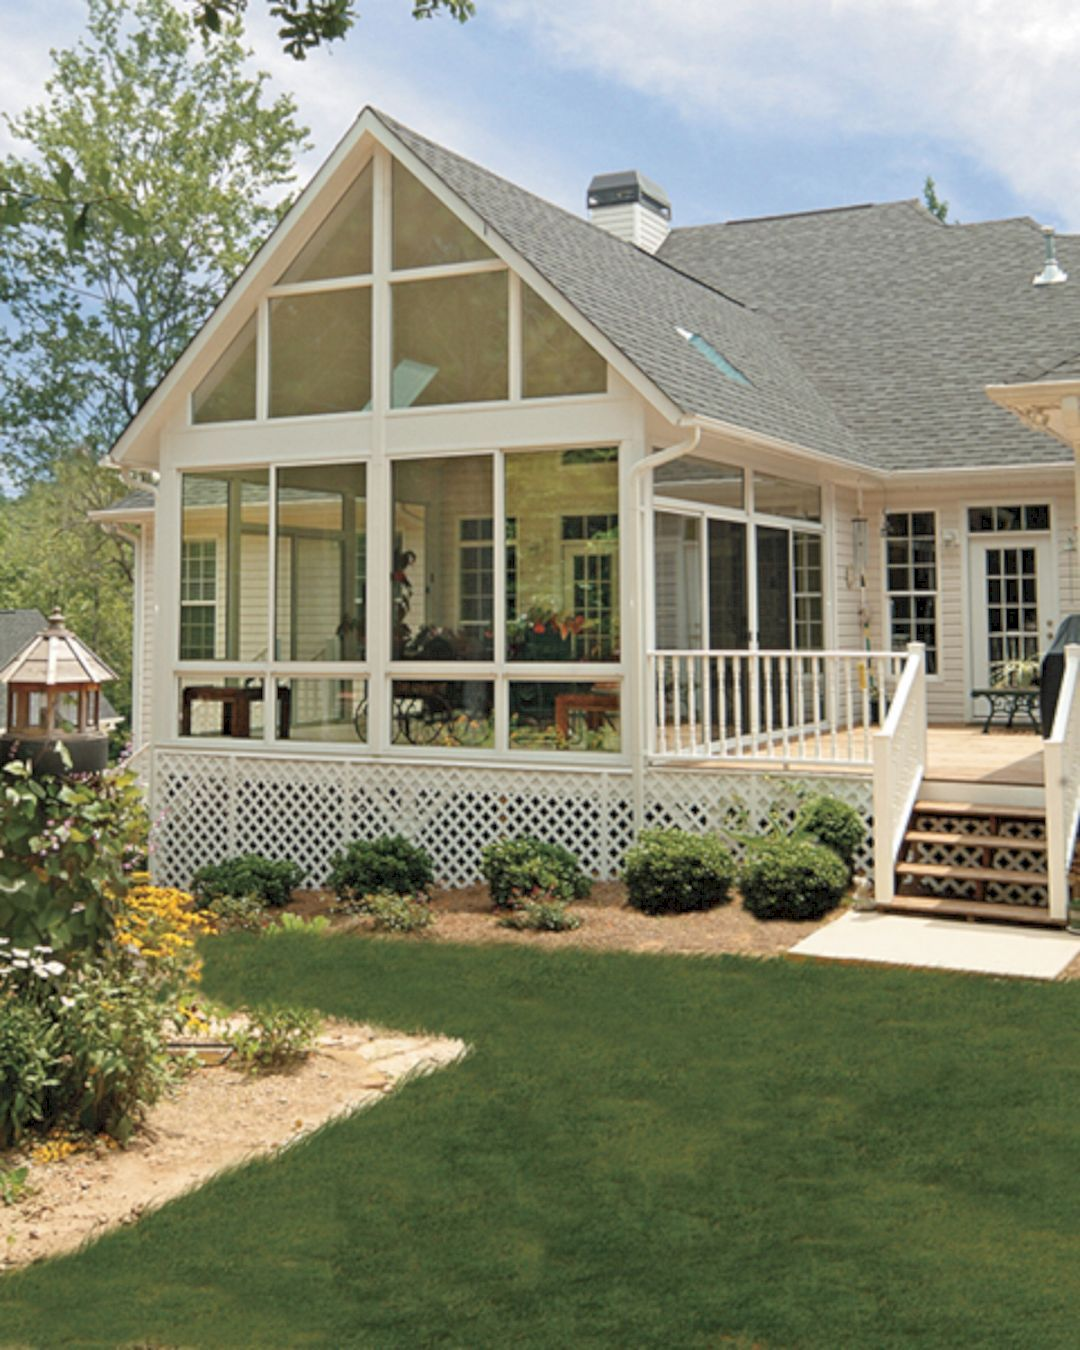 Wonderful screened in porch and deck idea 26 porch decking and screened porches Screened porch plans designs